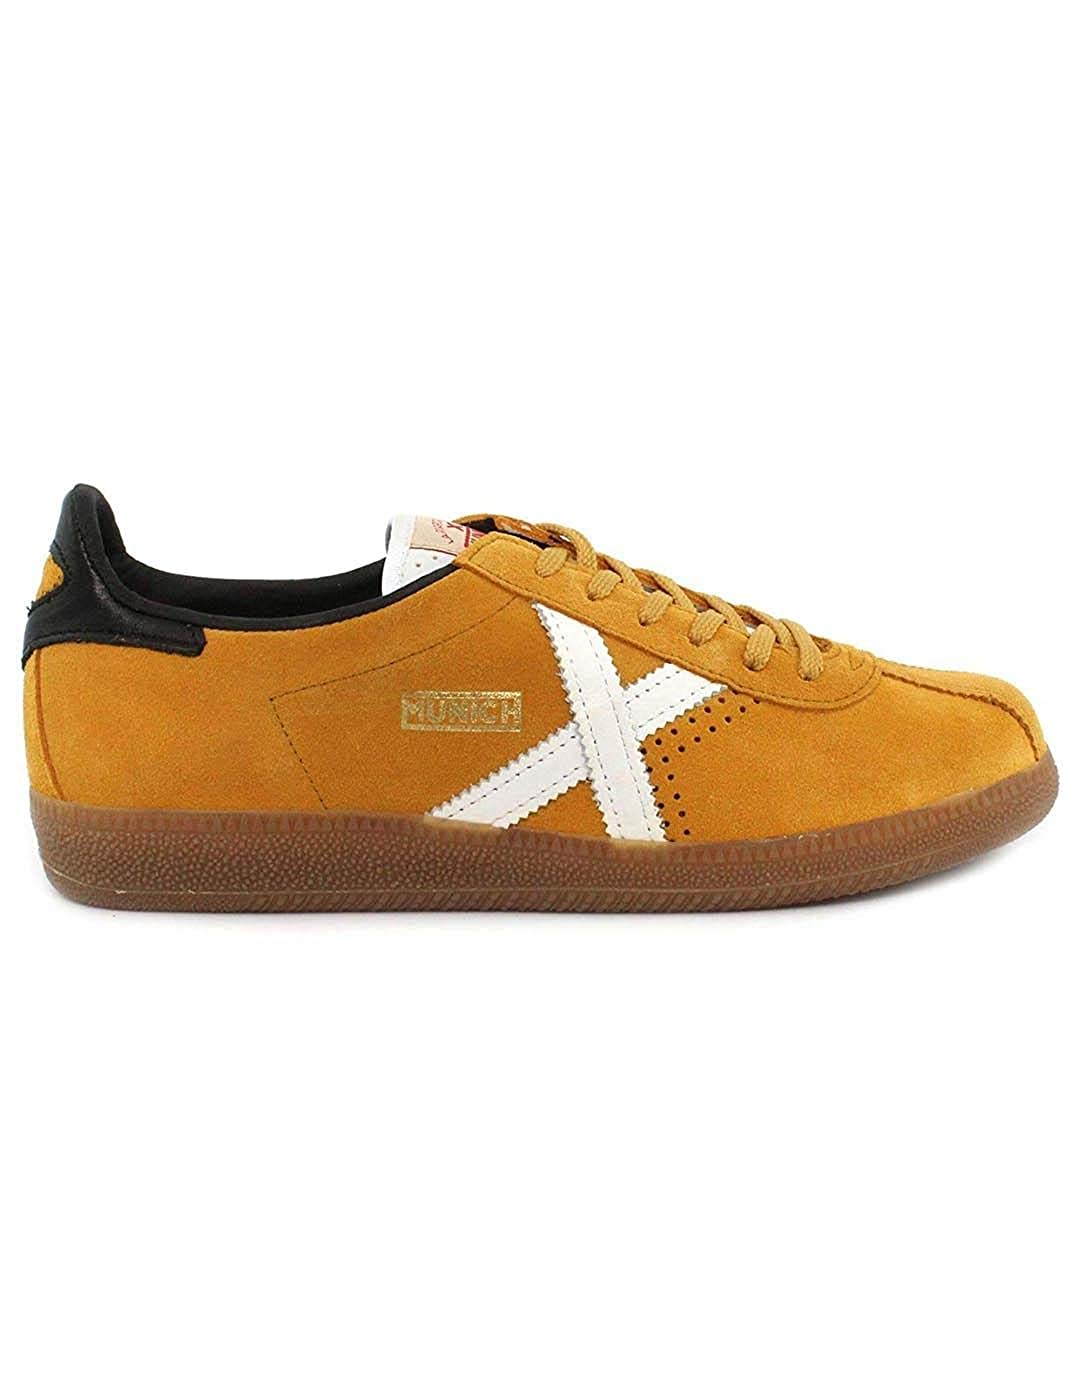 TALLA 41 EU. Zapatillas MUNICH BARRU 49 Mustard White